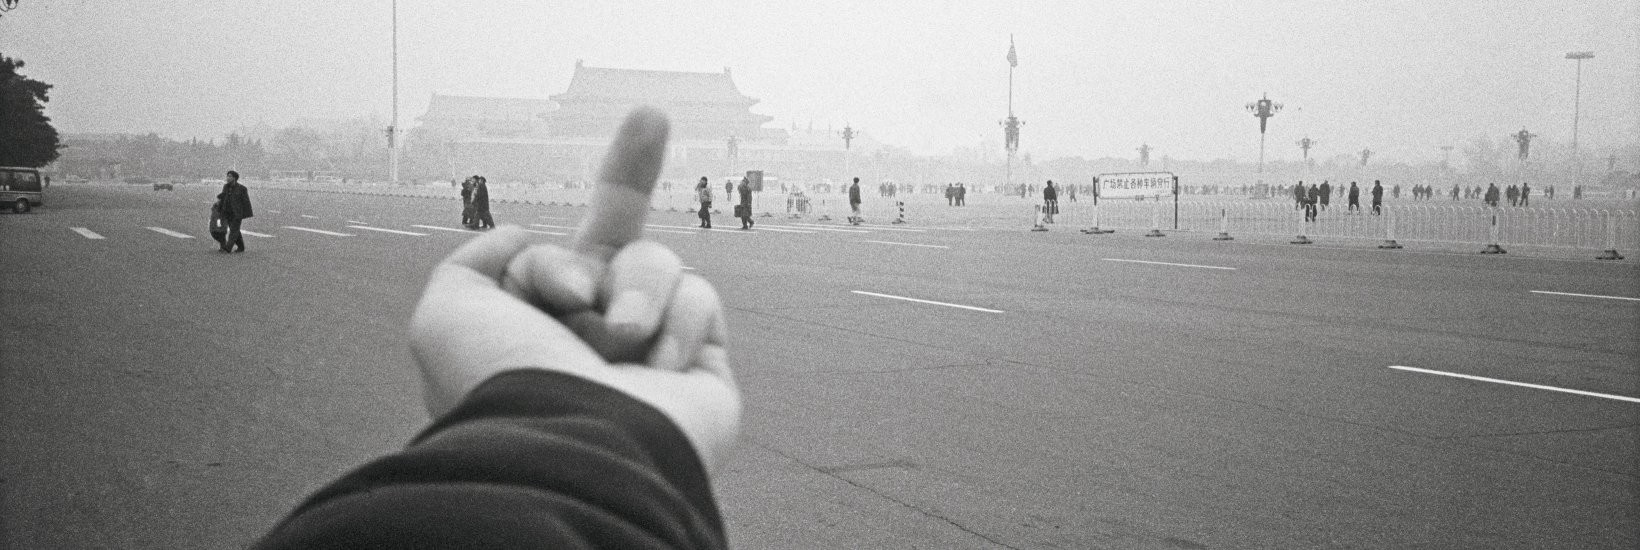 A work from Ai Weiwei's  Study in Perspective  series, taken between 1995 and 2003. The artist travels around the world flipping the bird to different symbols of power.